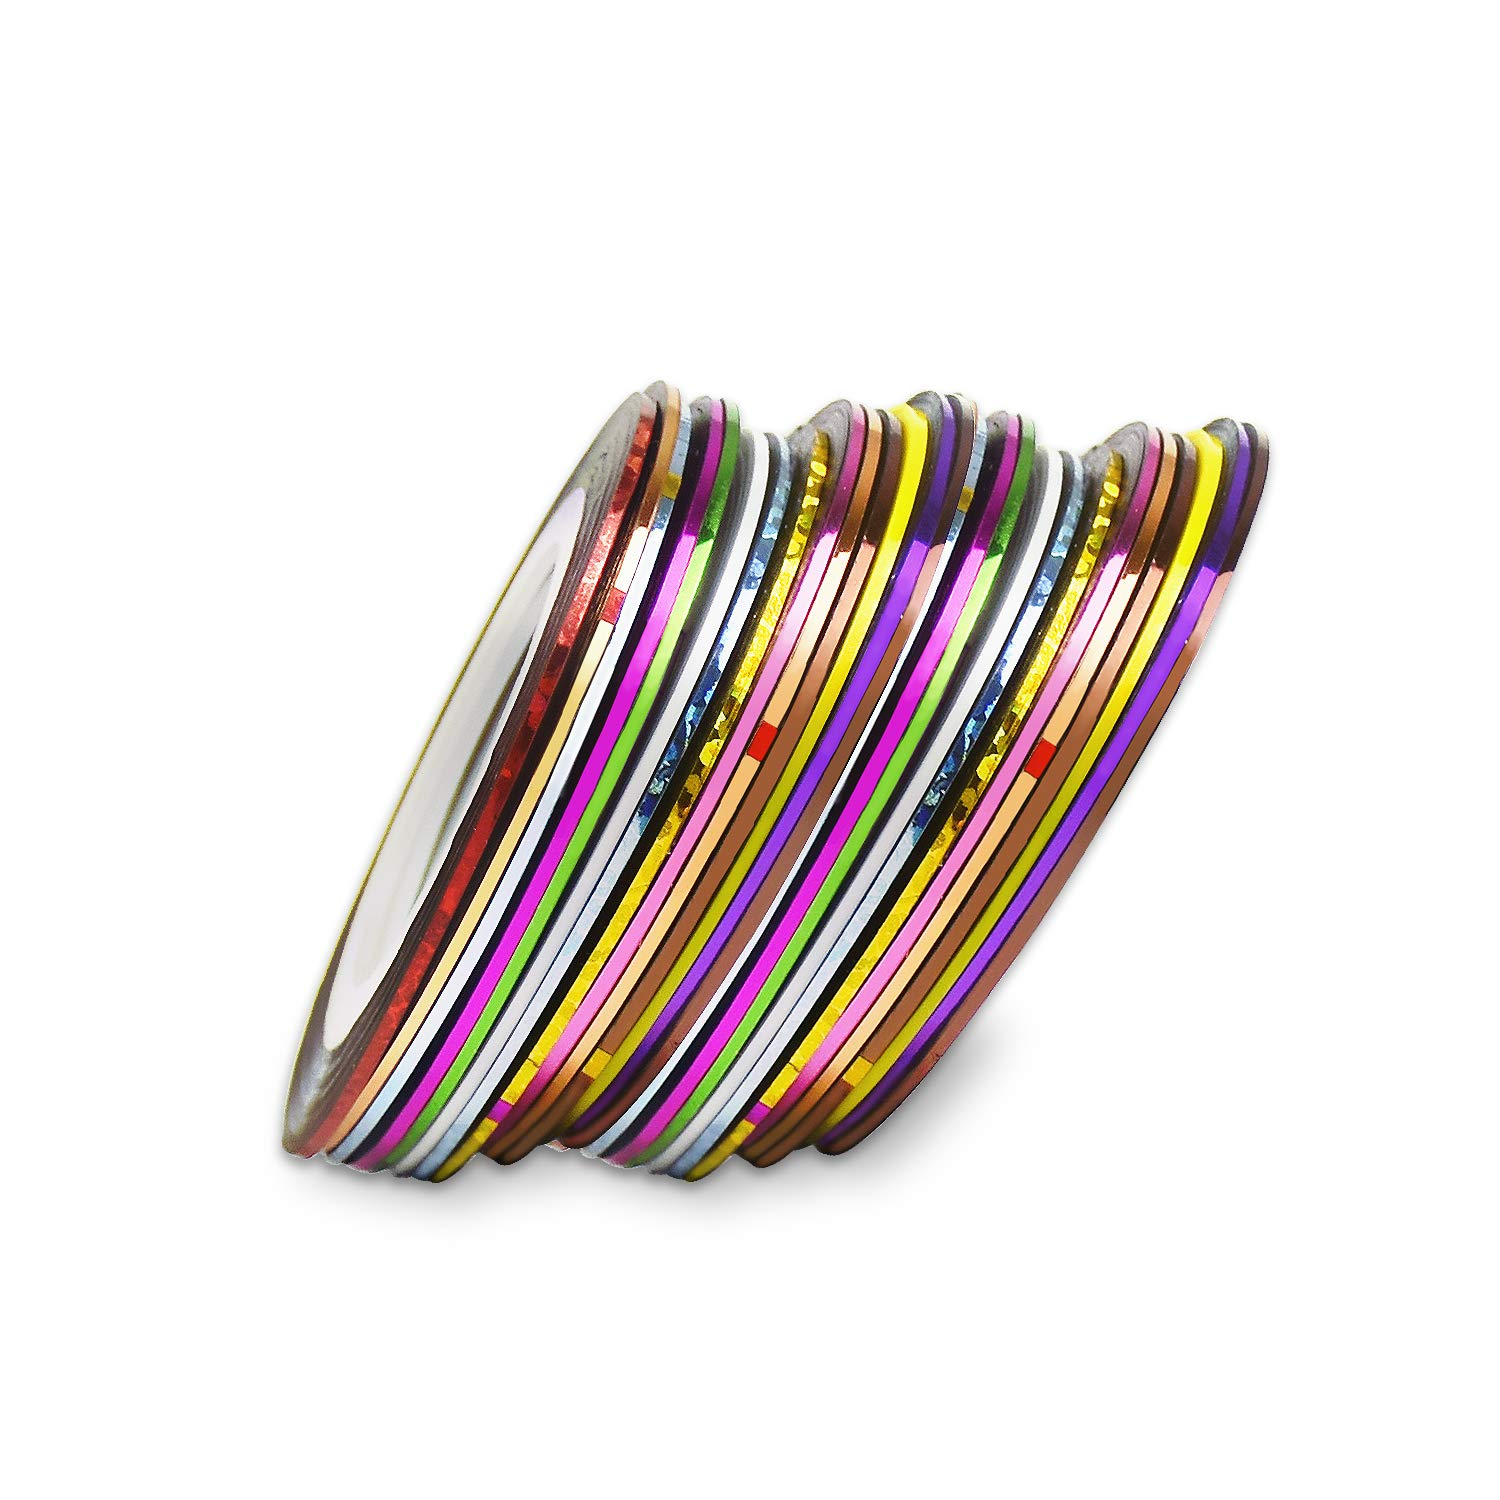 60 Pcs Nail Art Striping Tape, Mixed Colors Nail Art Decoration Stickers-30 Color Awpeye